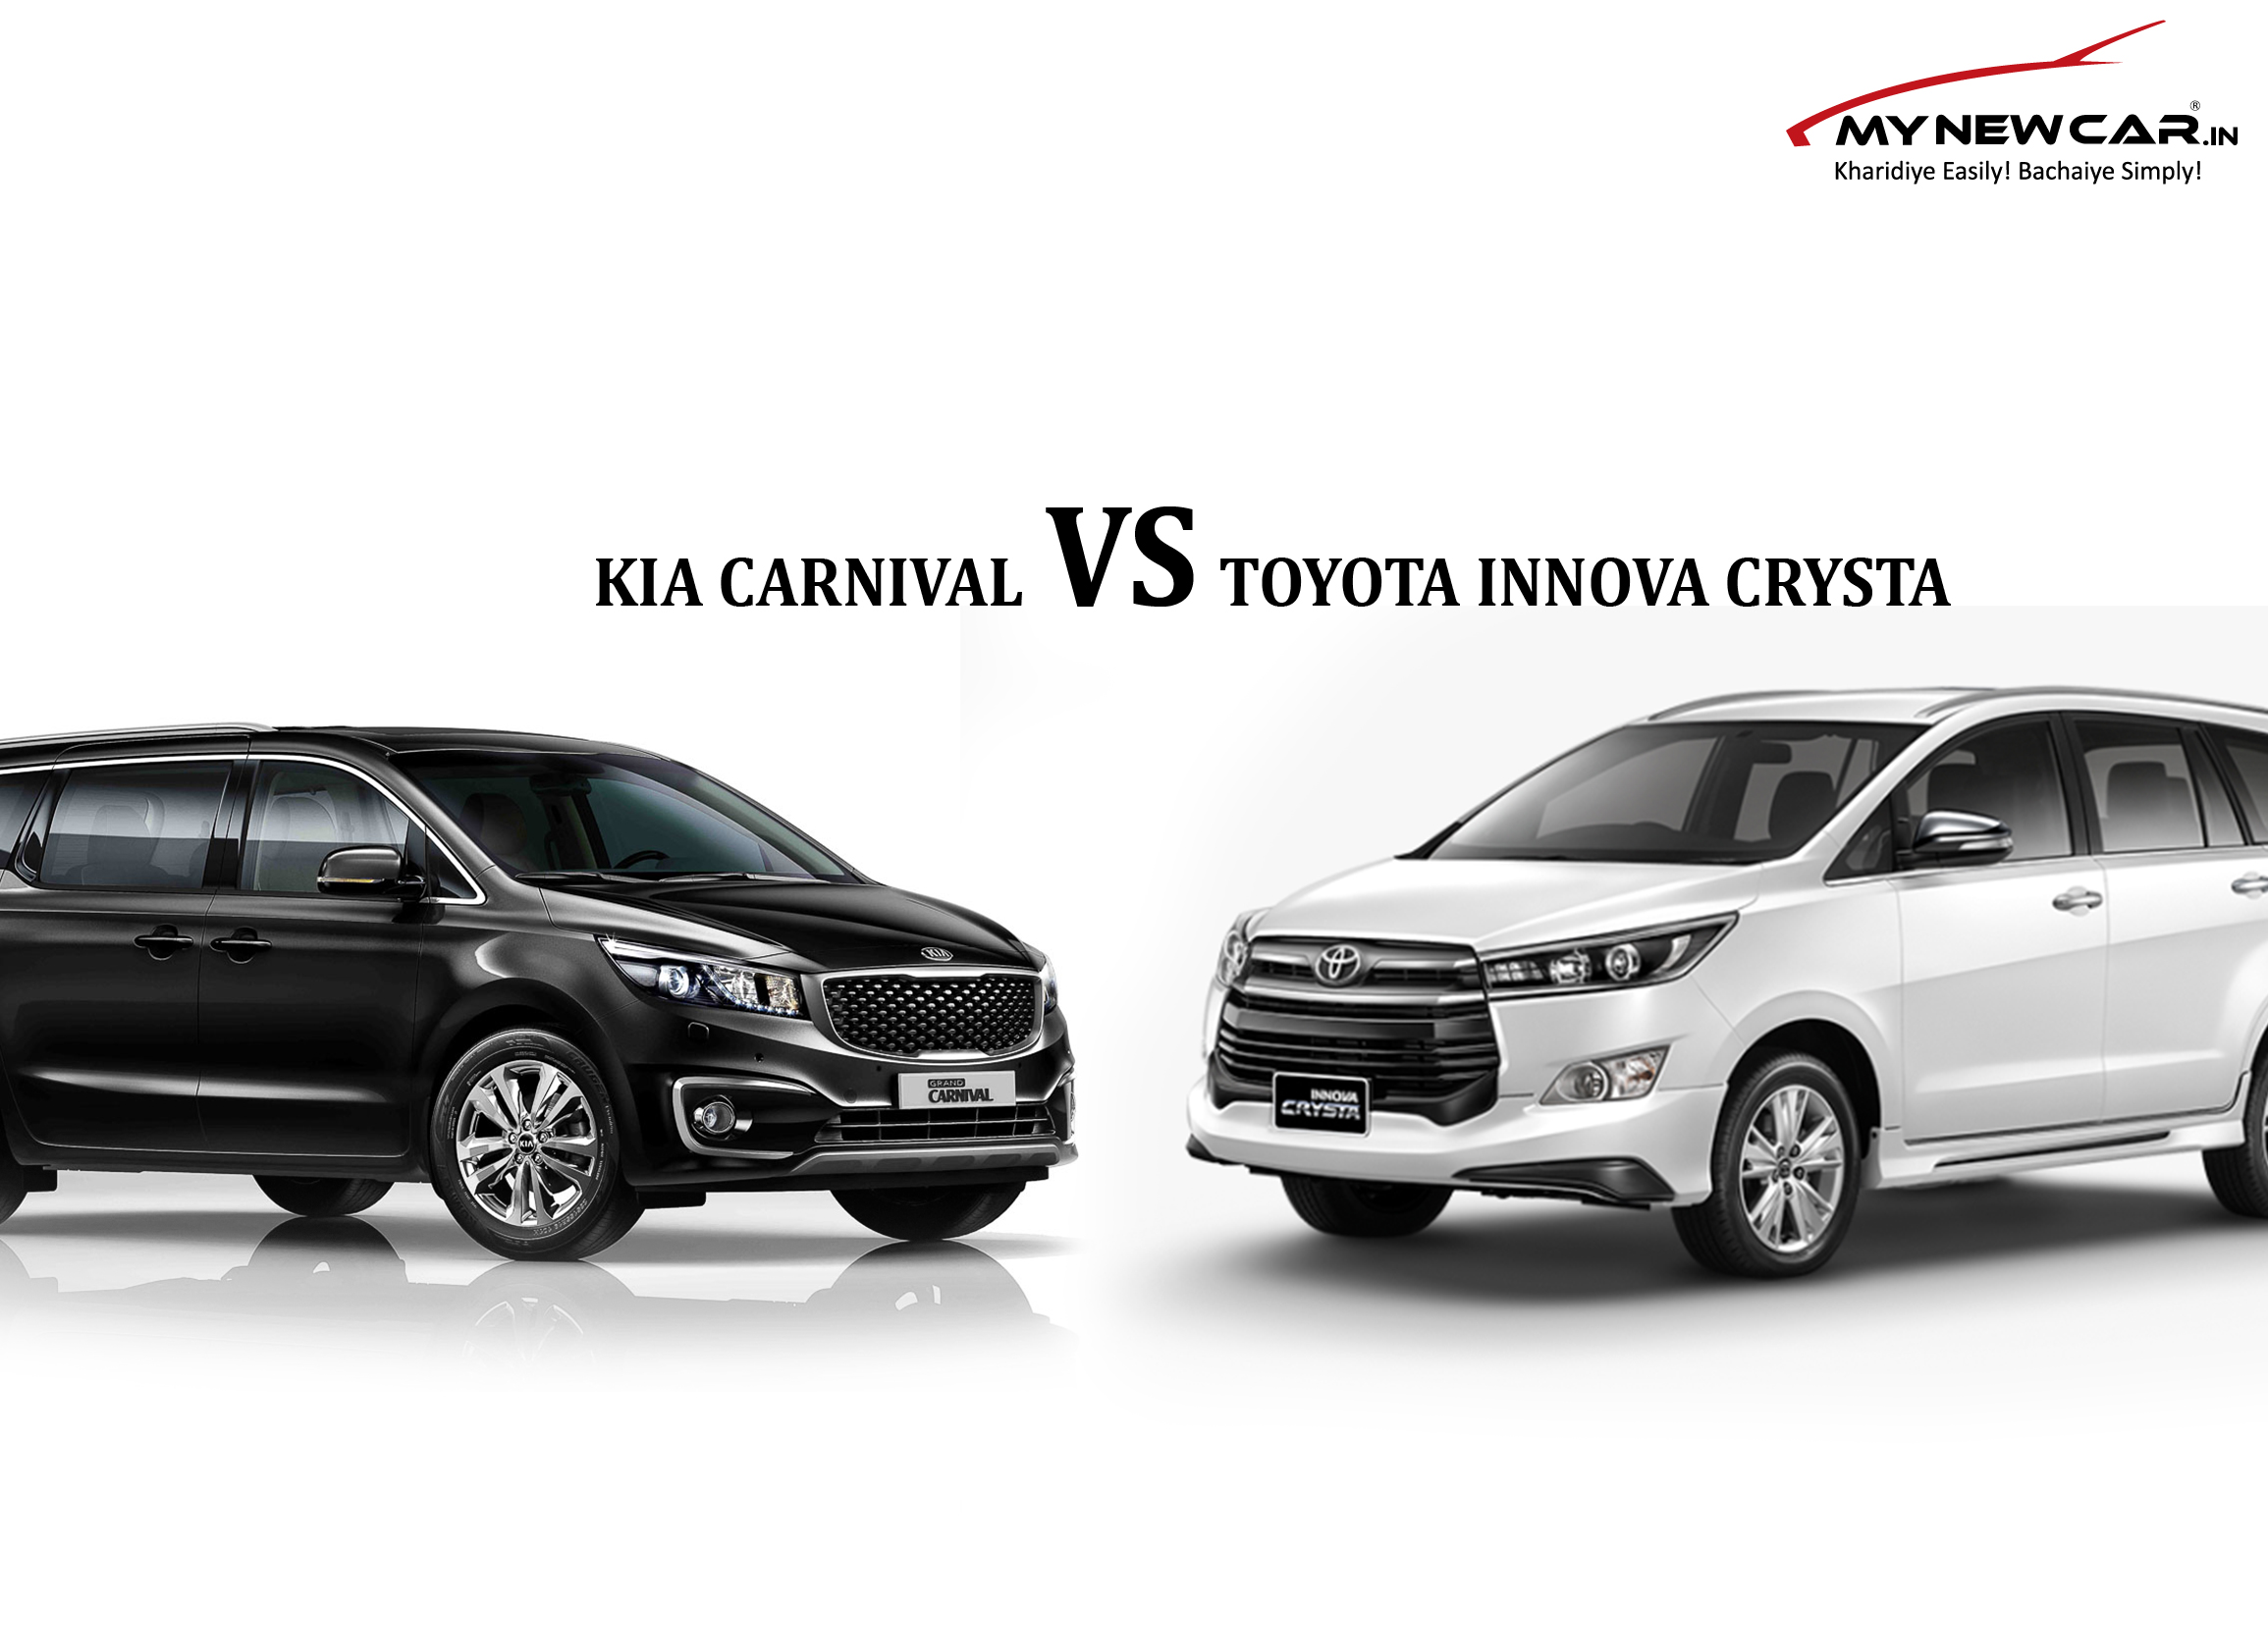 Car Comparison : KIA CARNIVAL VS TOYOTA INNOVA CRYSTA